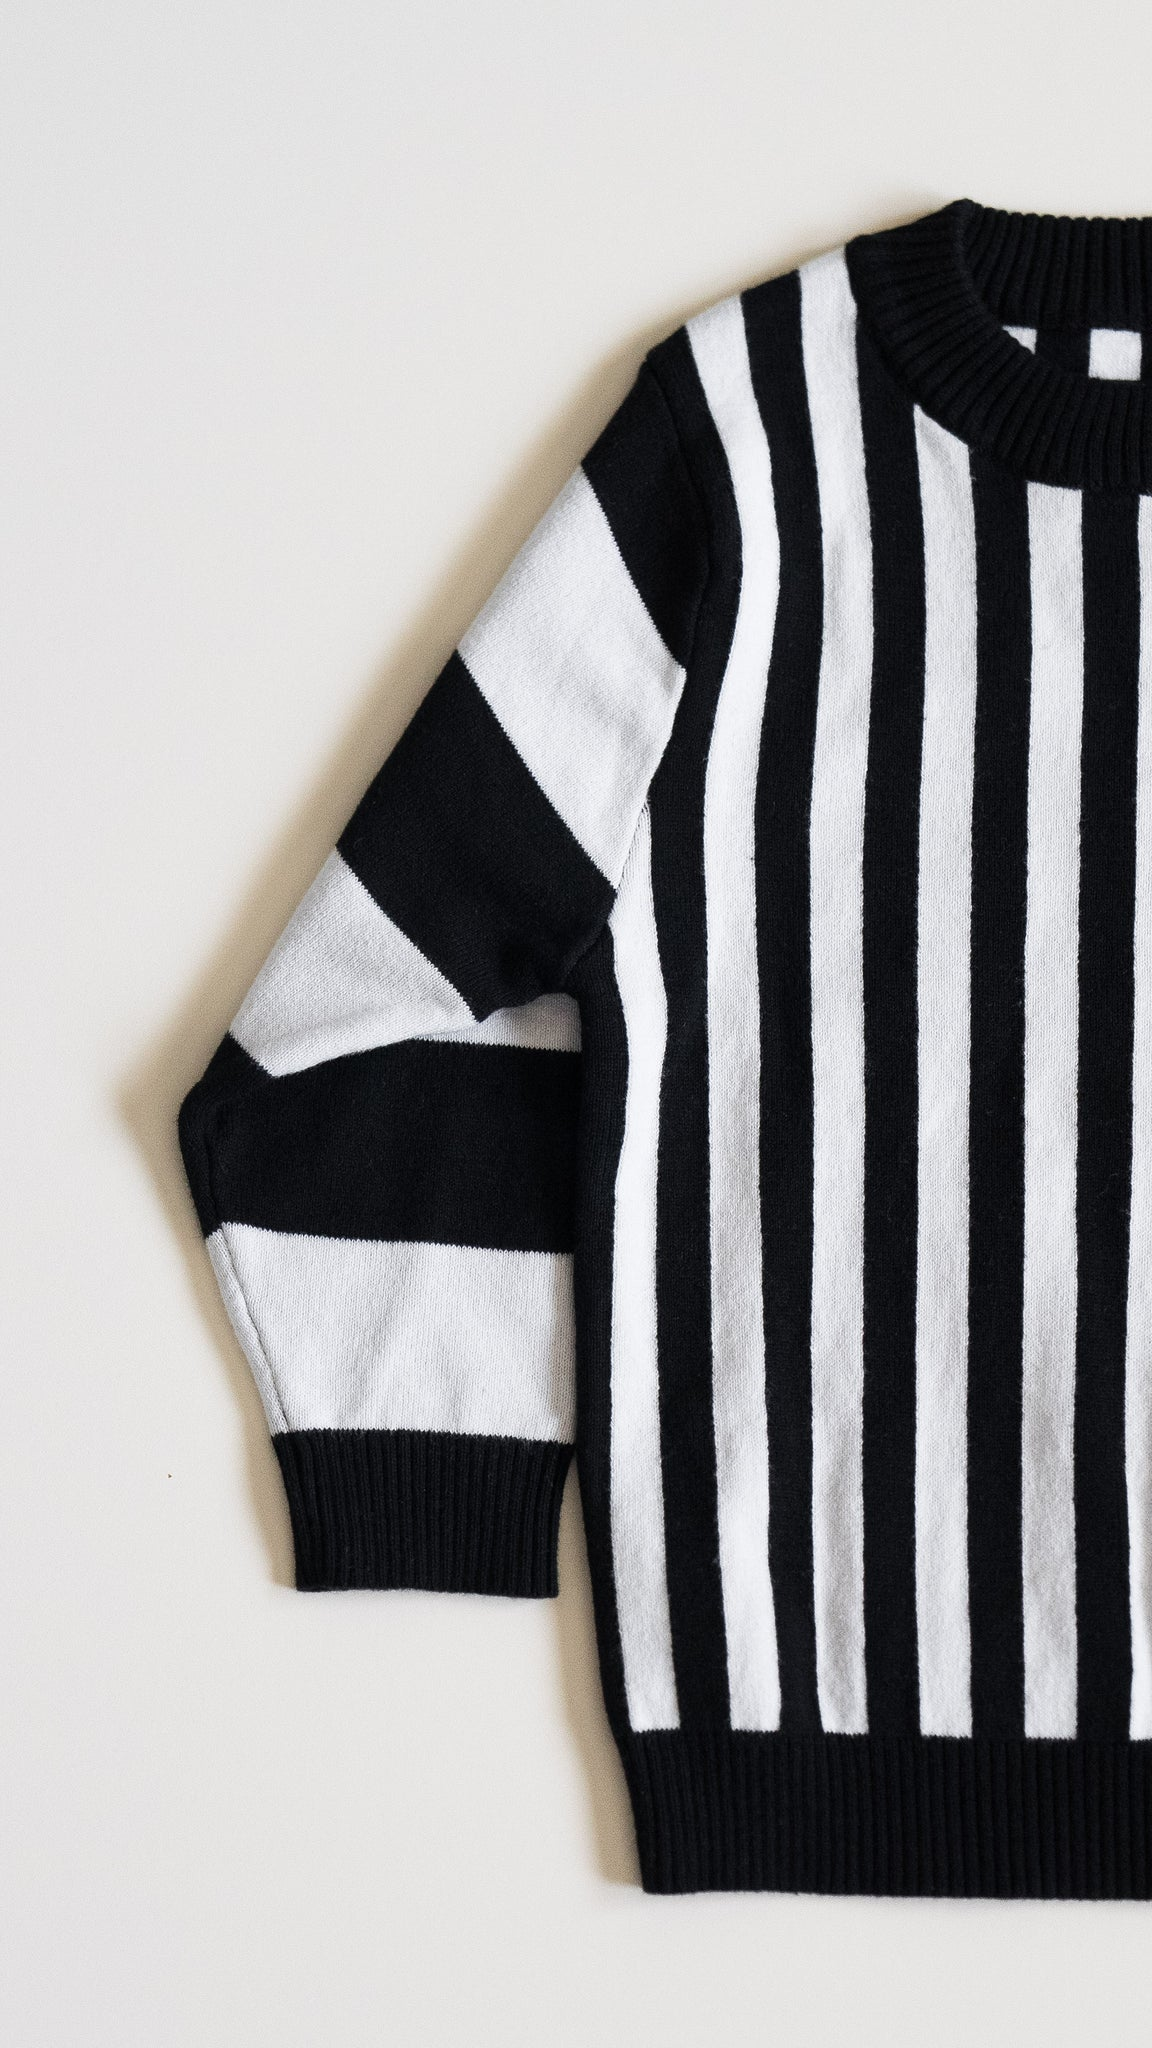 KIDS 'rei' knit sweater / black stripes